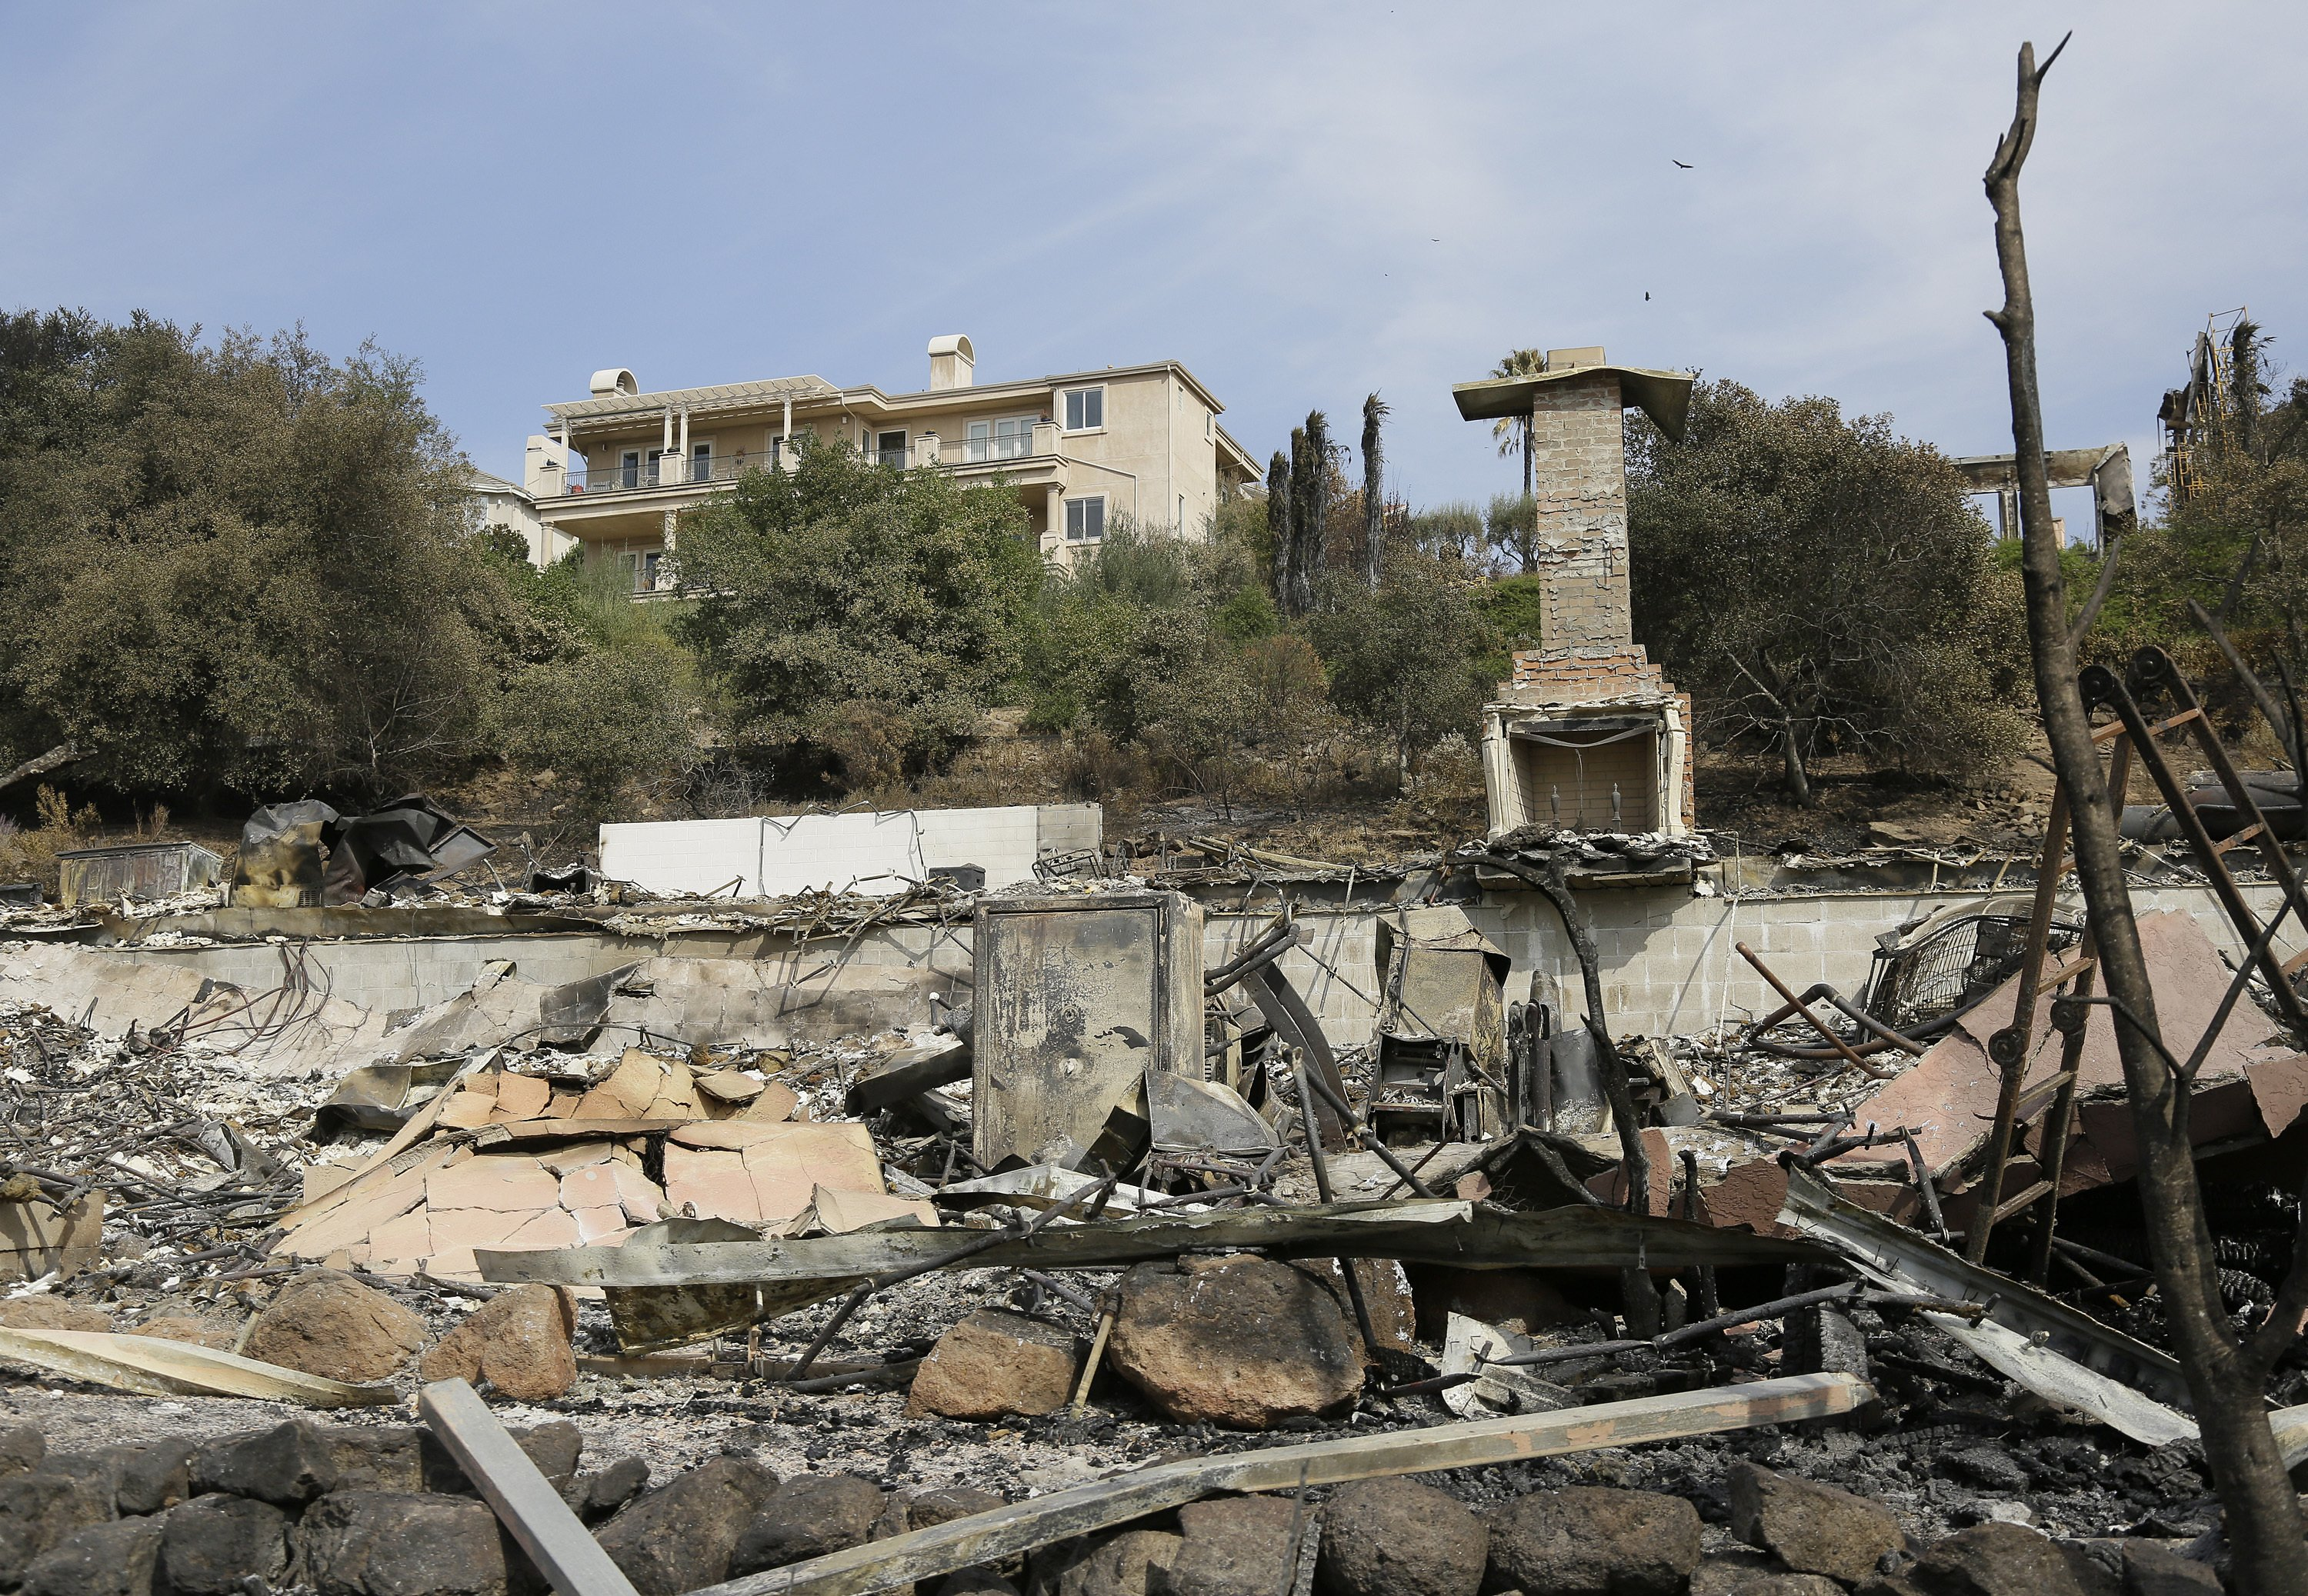 Houses spared by massive fires bring joy and sense of loss